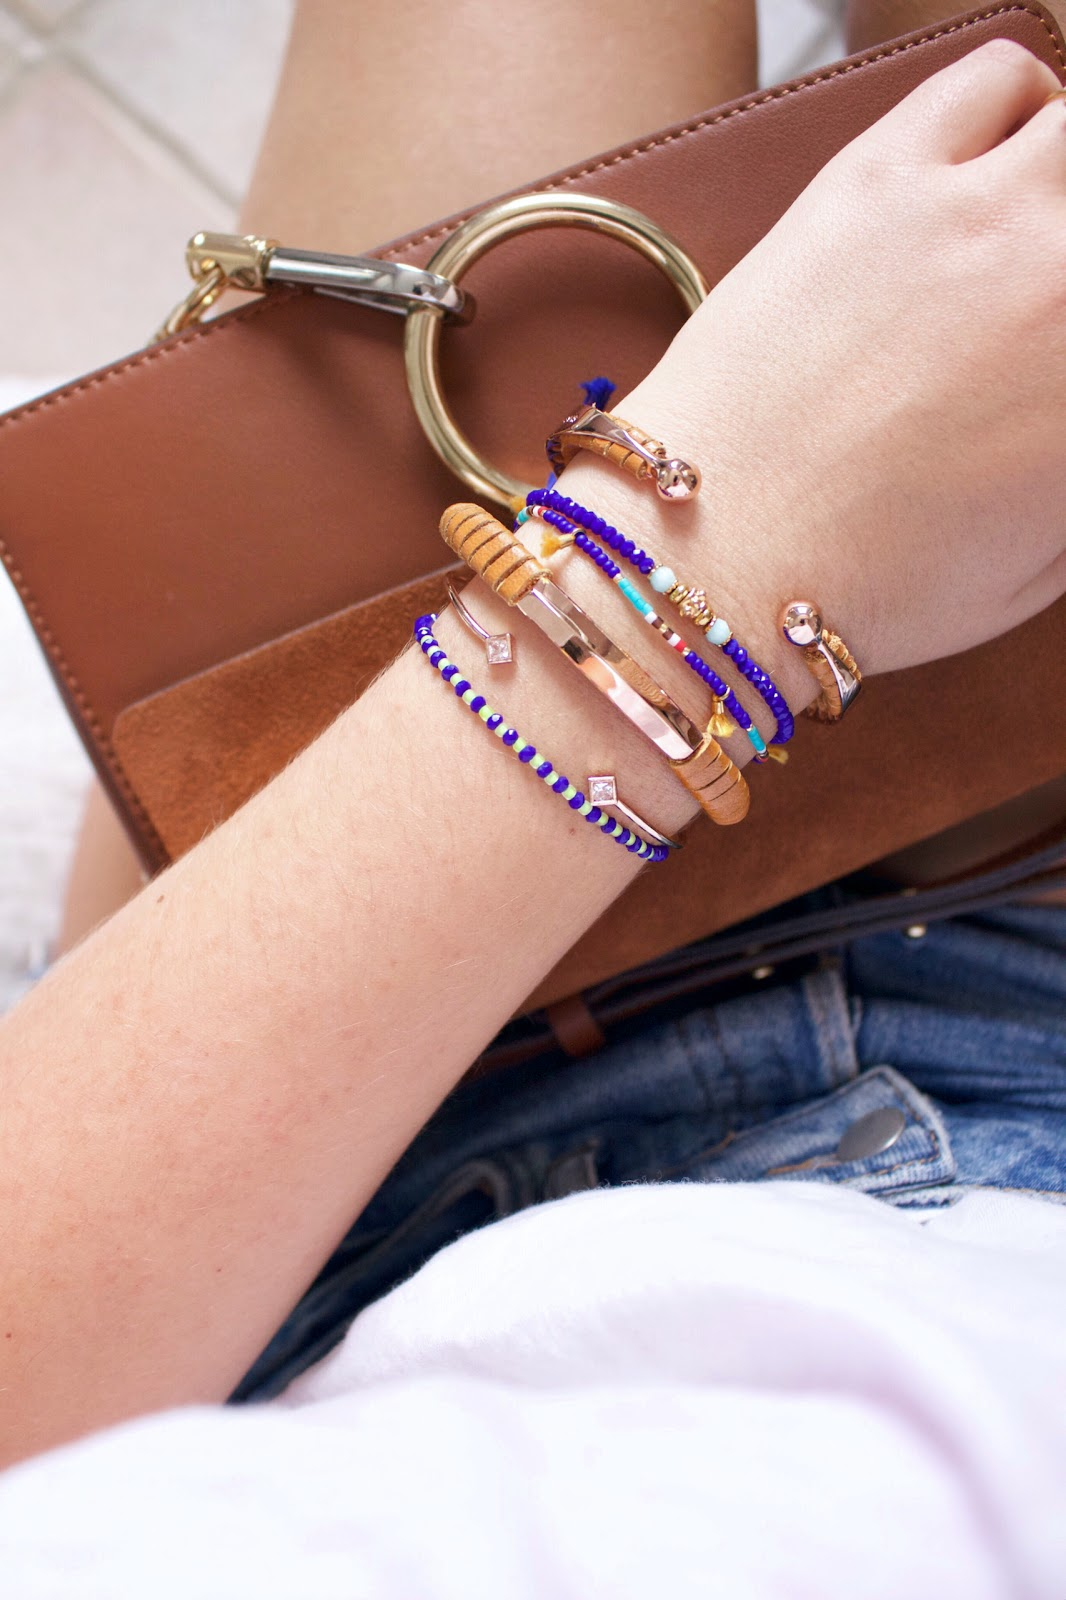 There's No Party Like an Arm Party